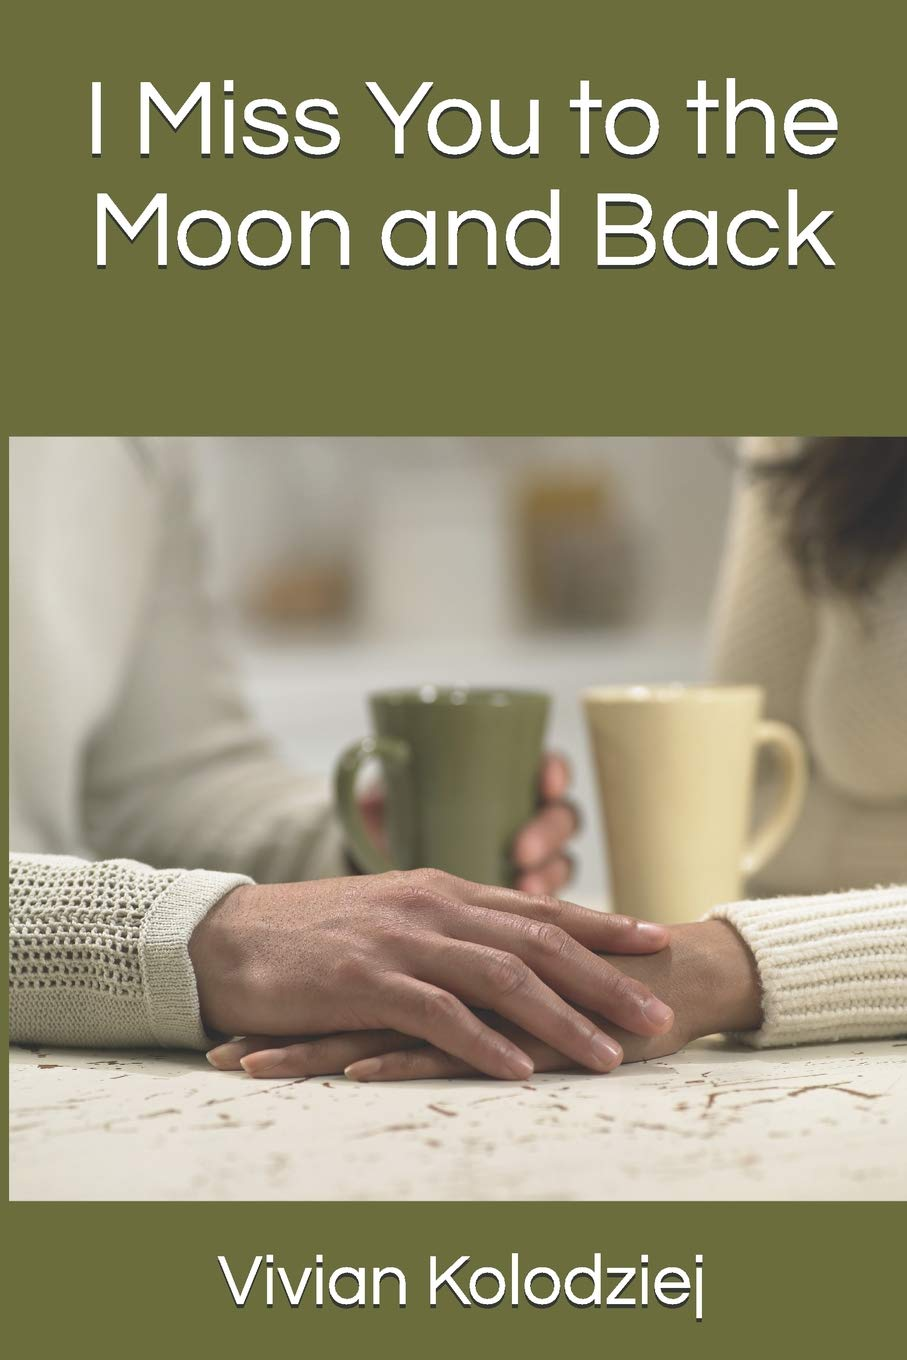 Back moon 意味 the and to